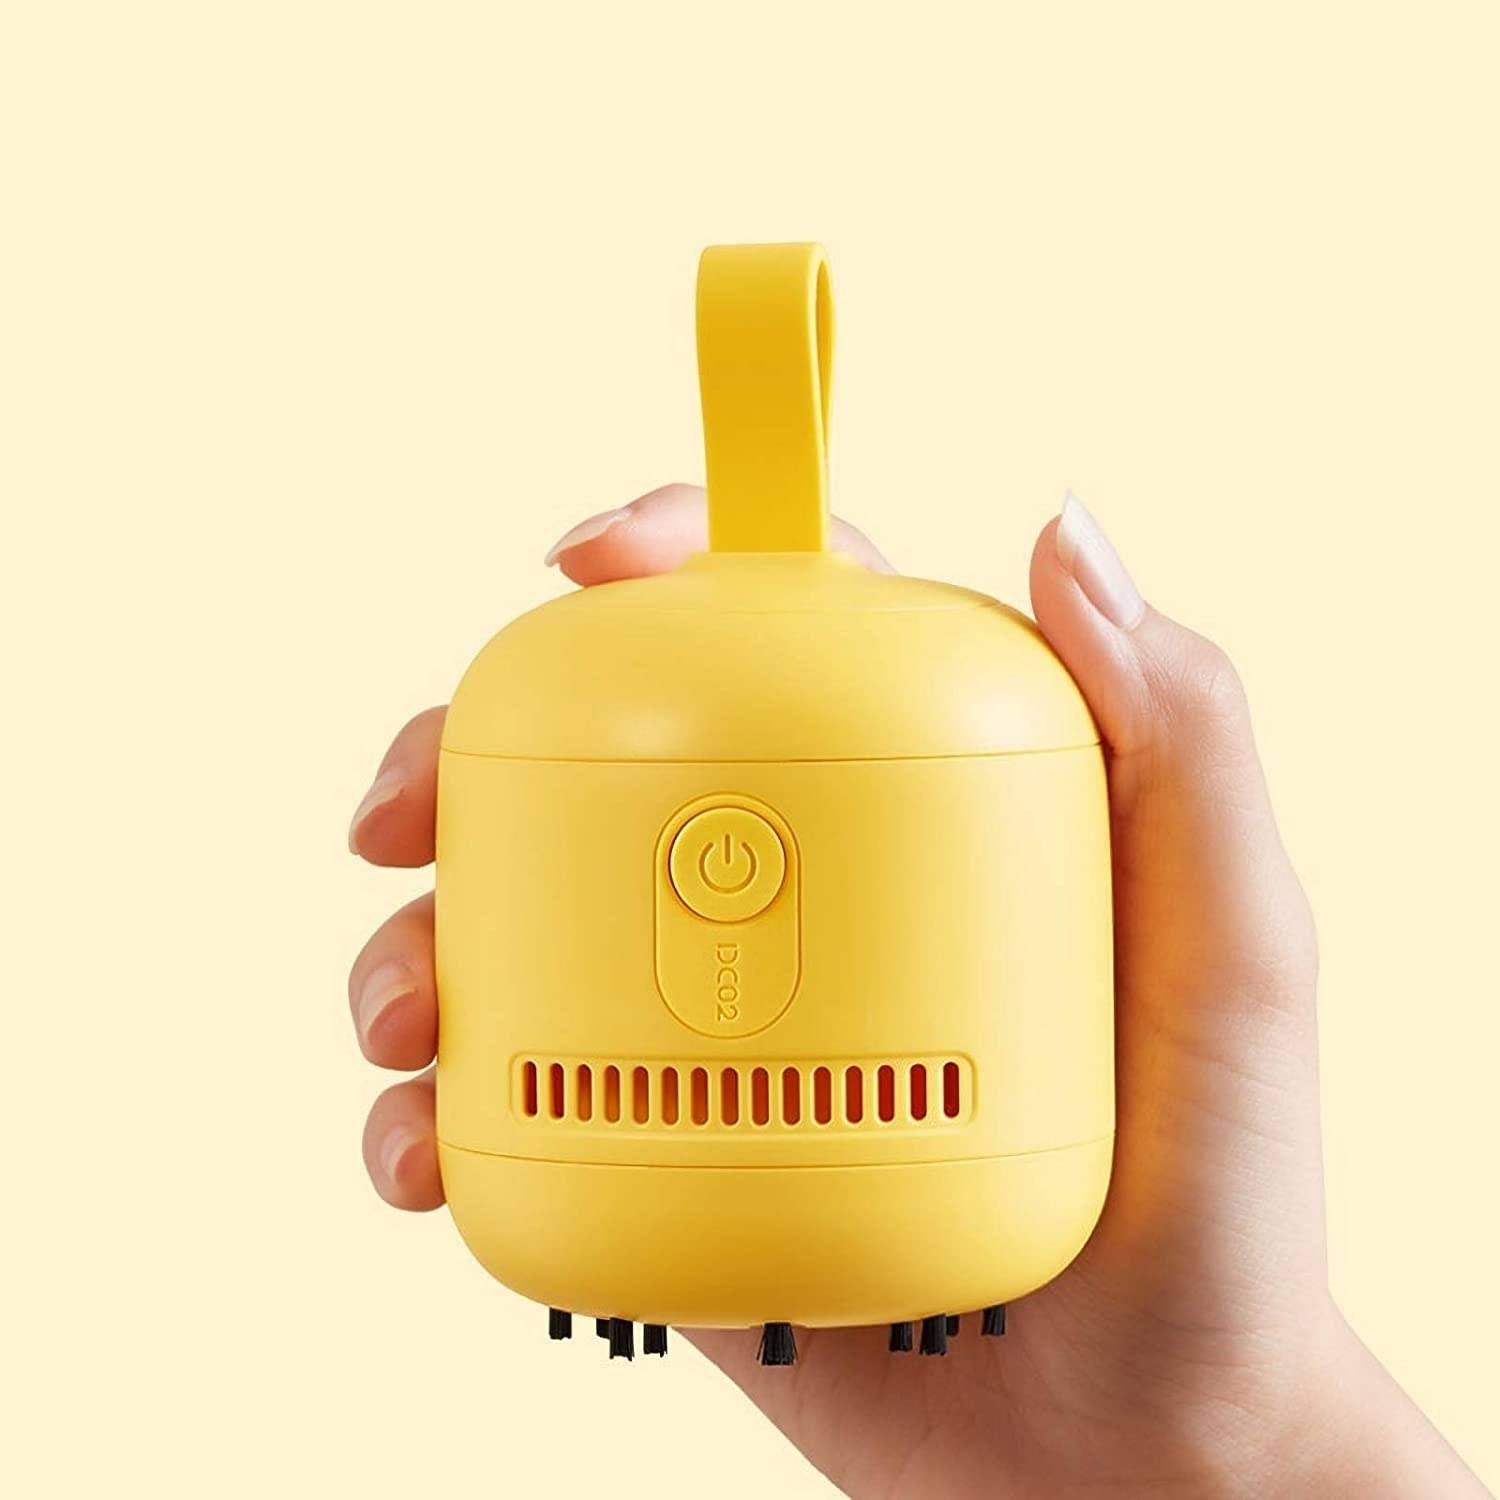 A person holding up a minimalist palm-sized vacuum